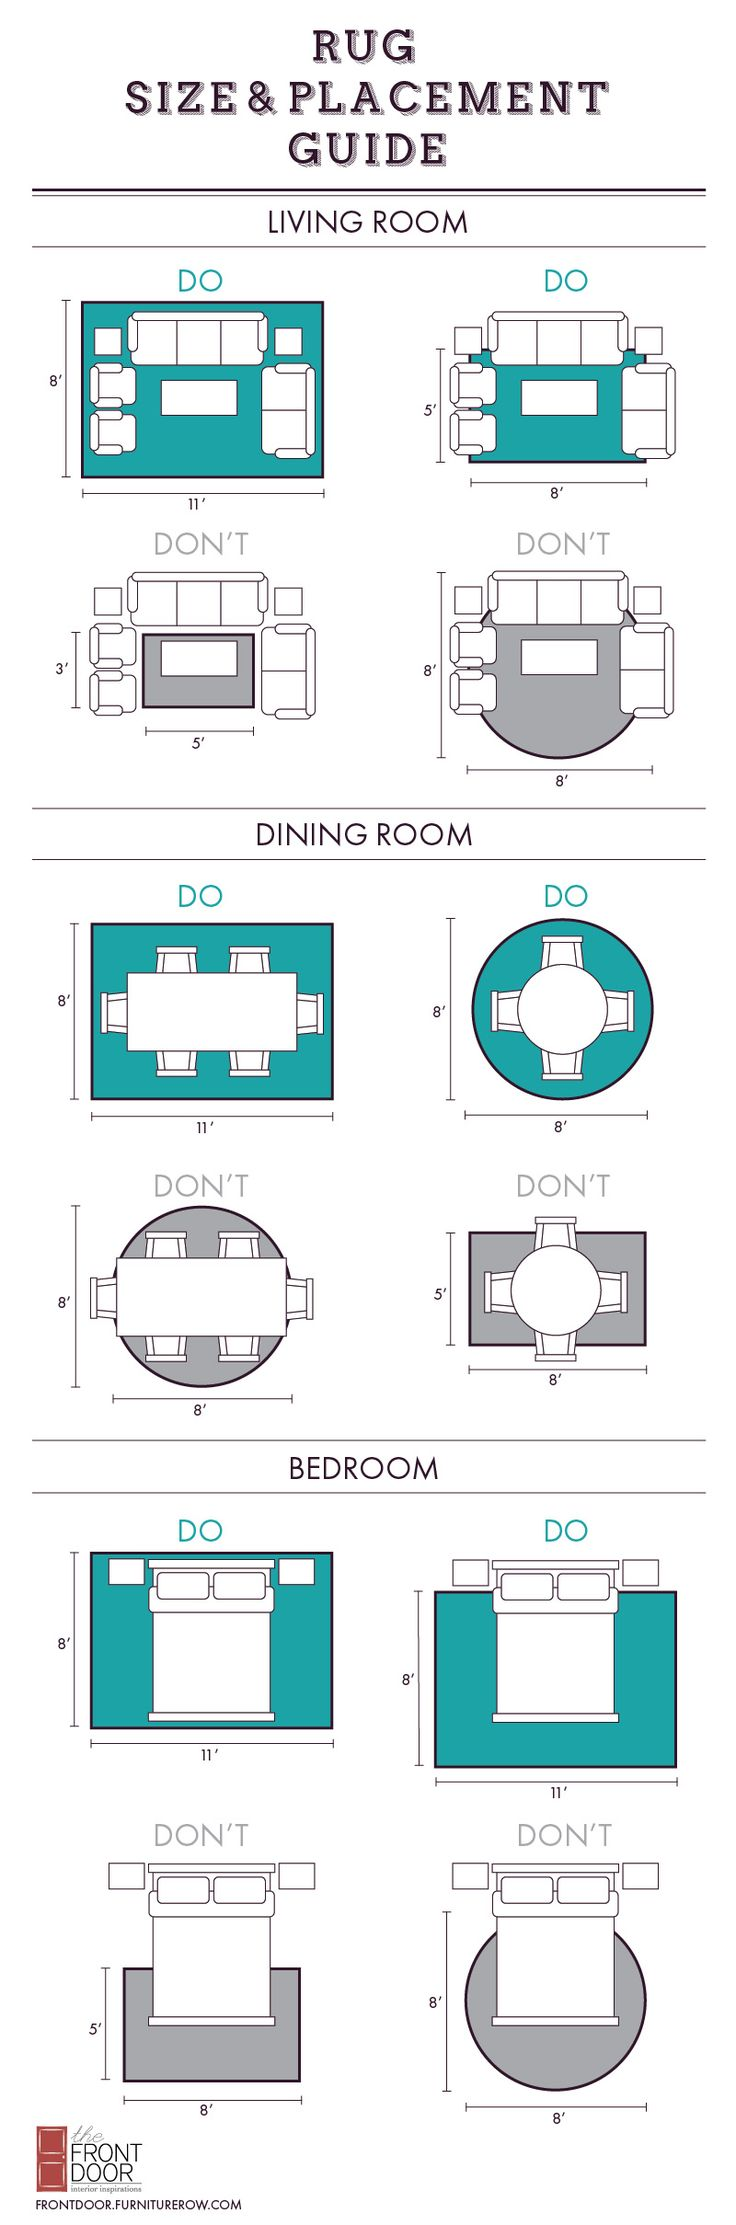 printable area rug size and placement guide on the front door blog - Dining Room Rug Size